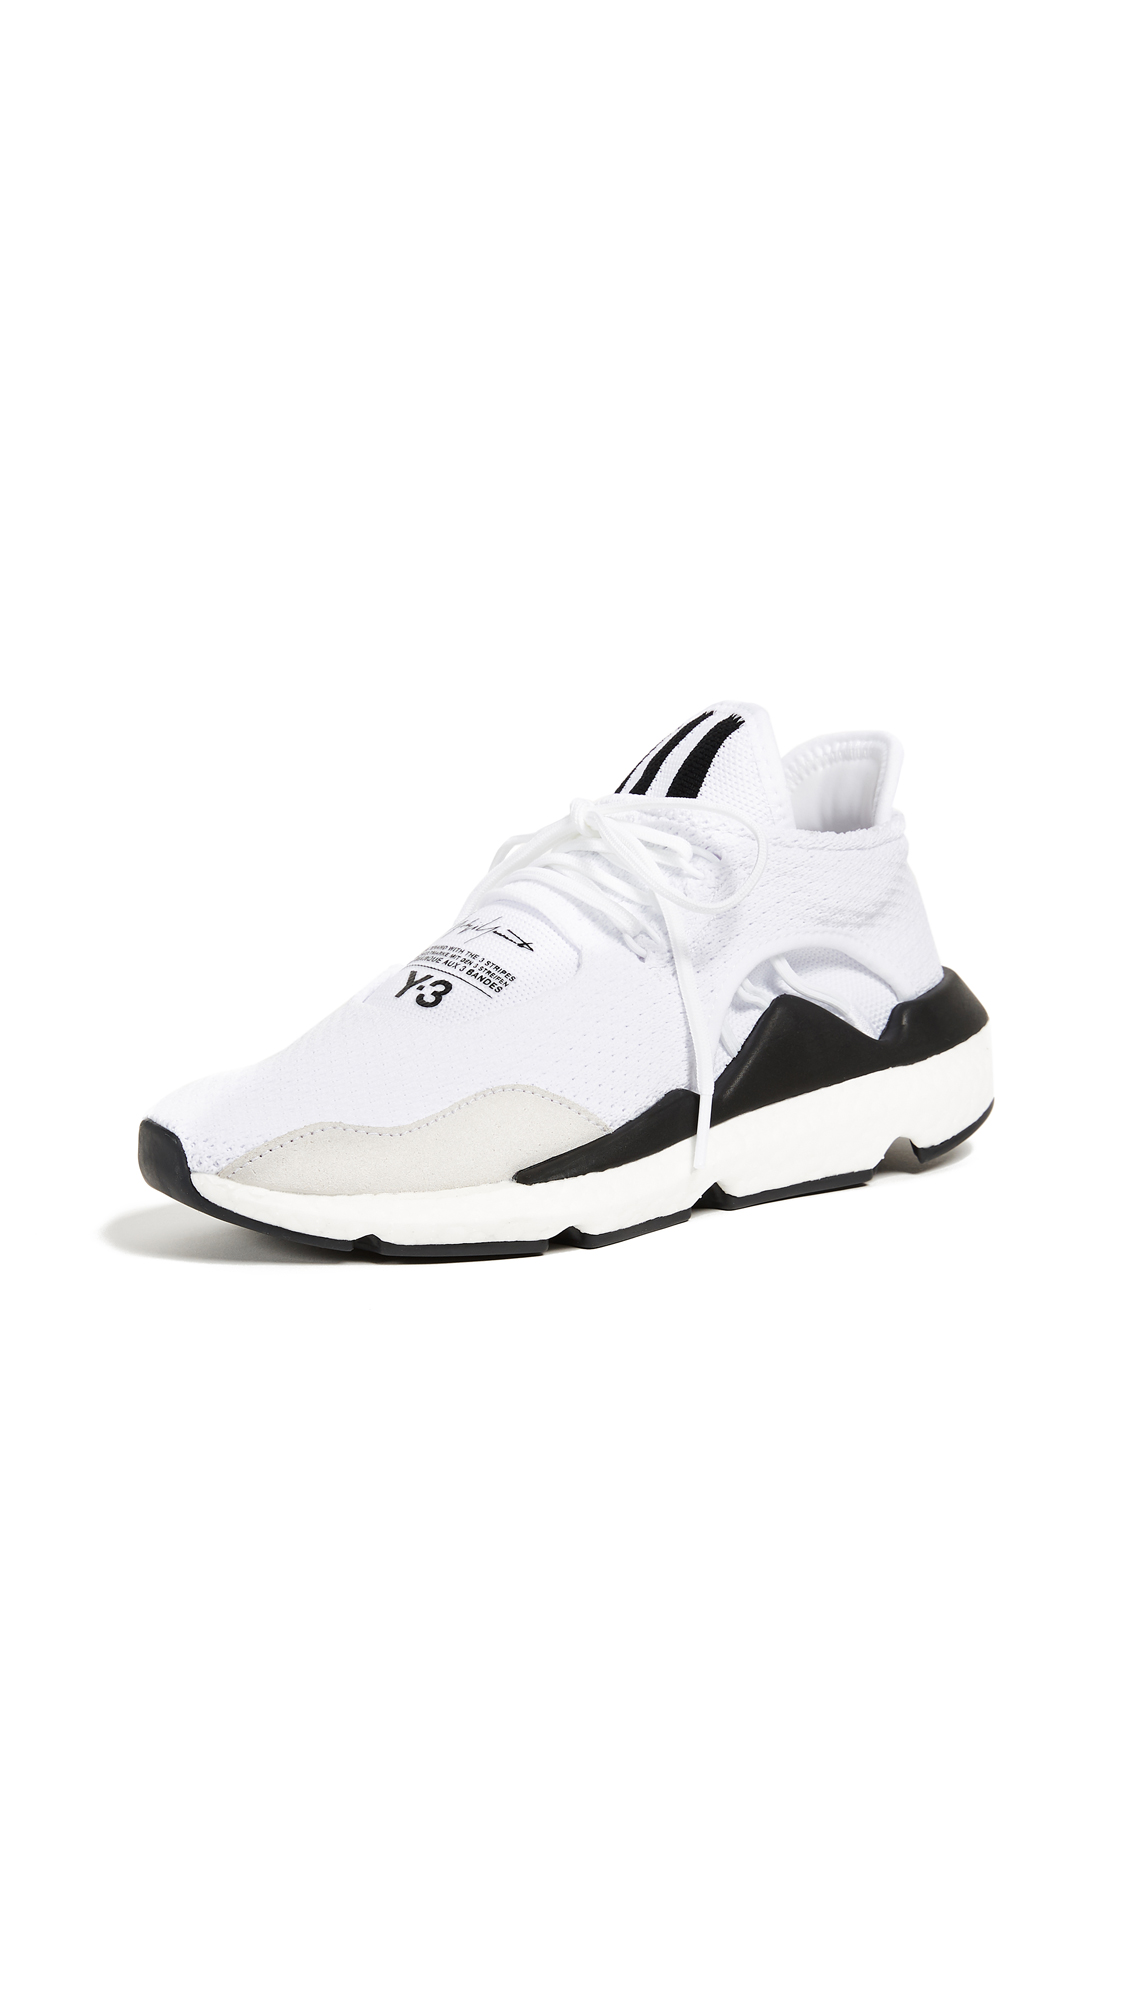 Y-3 Y-3 Saikou Sneakers - White/Black/Black